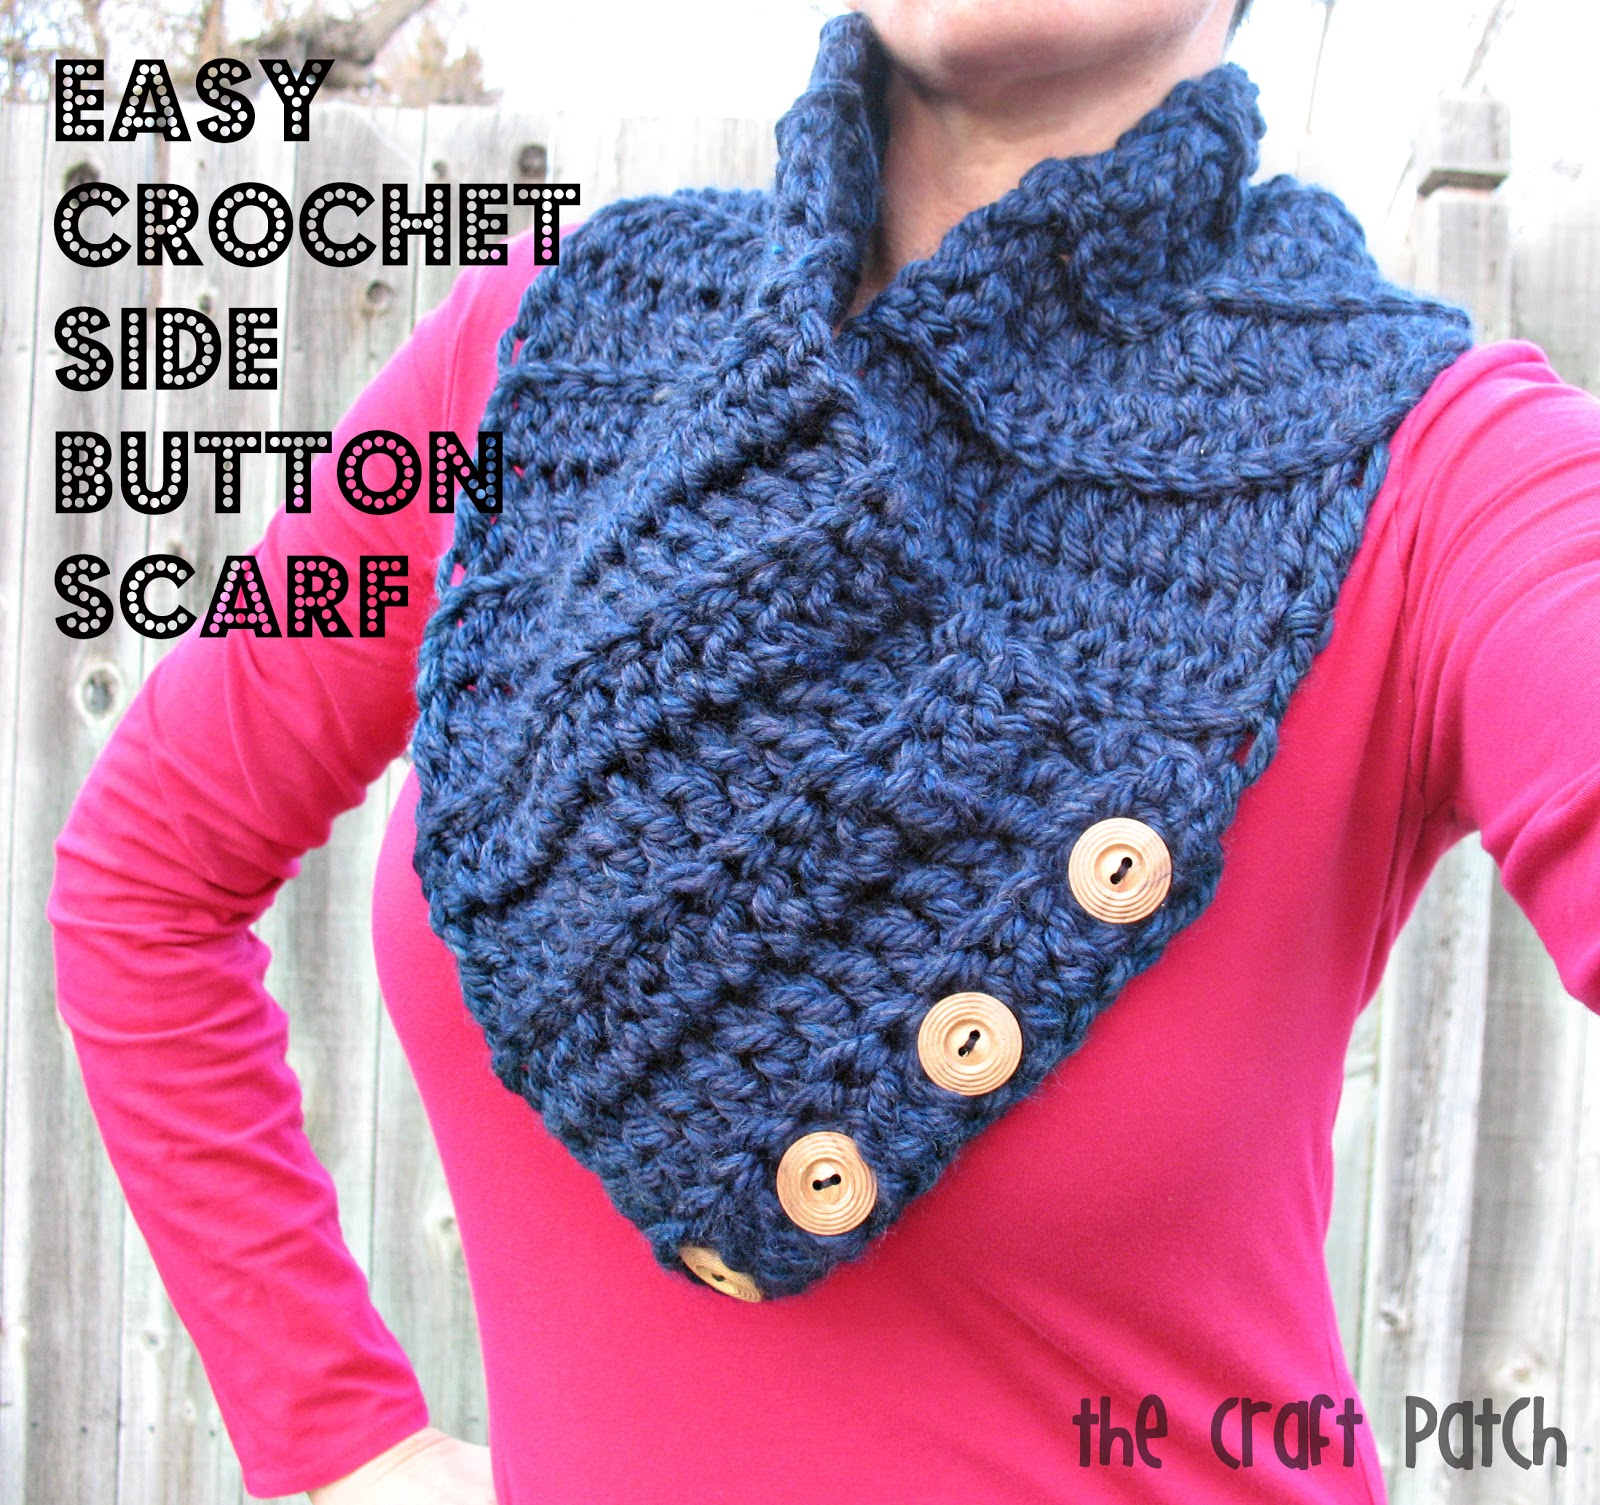 easy crochet scarf easy crochet side button scarf rdyqvgp